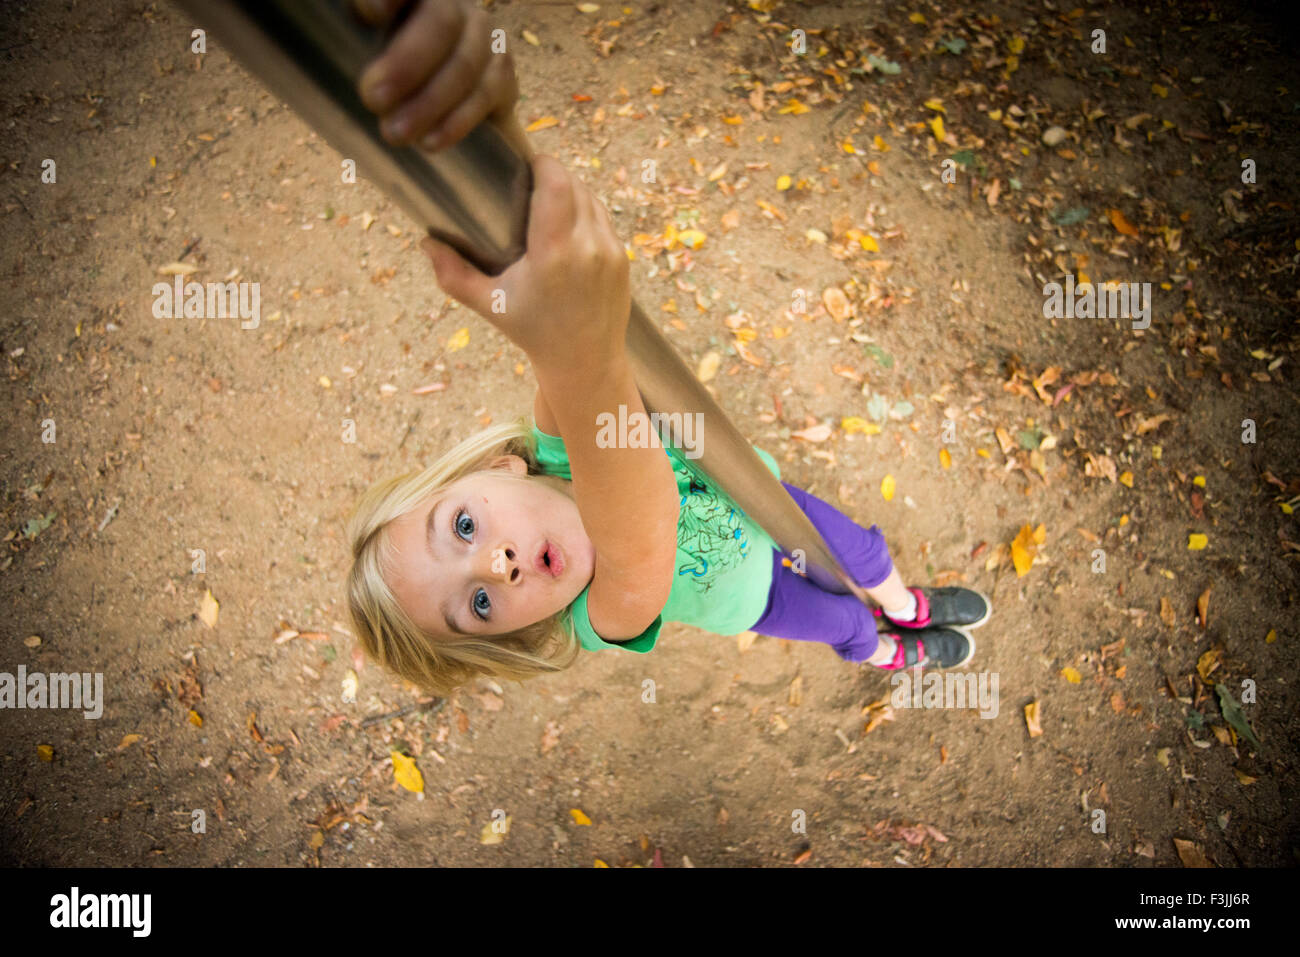 Child Girl climbs on a pole at the playground, sliding, kid playing - Stock Image